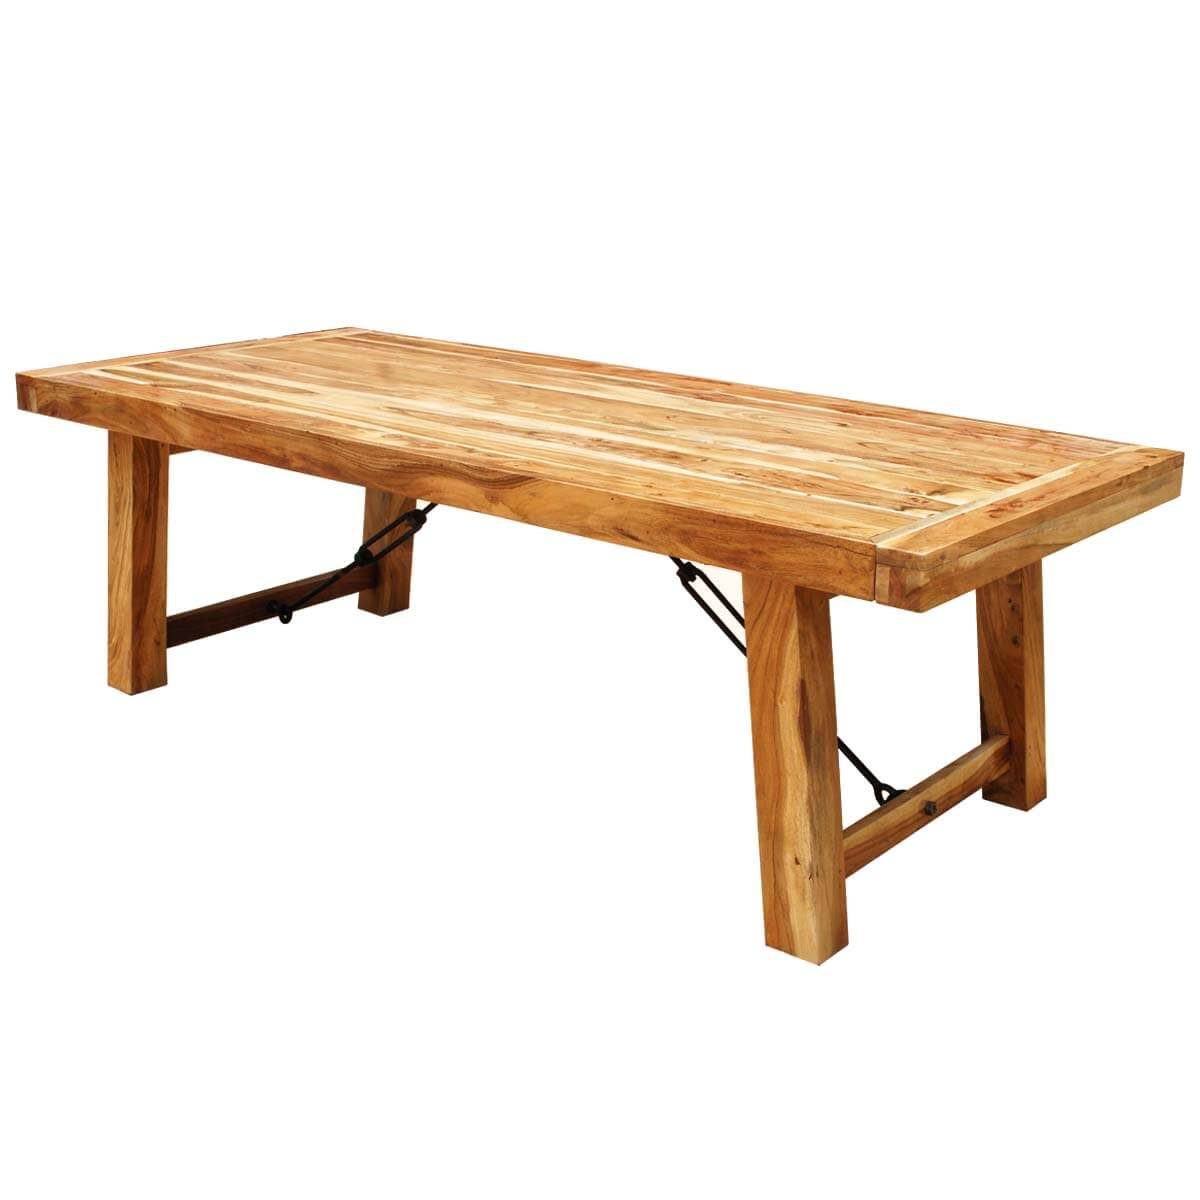 Rustic Wood Large Santa Fe Dining Room Table w Extensions : 44312 from www.sierralivingconcepts.com size 1200 x 1200 jpeg 75kB